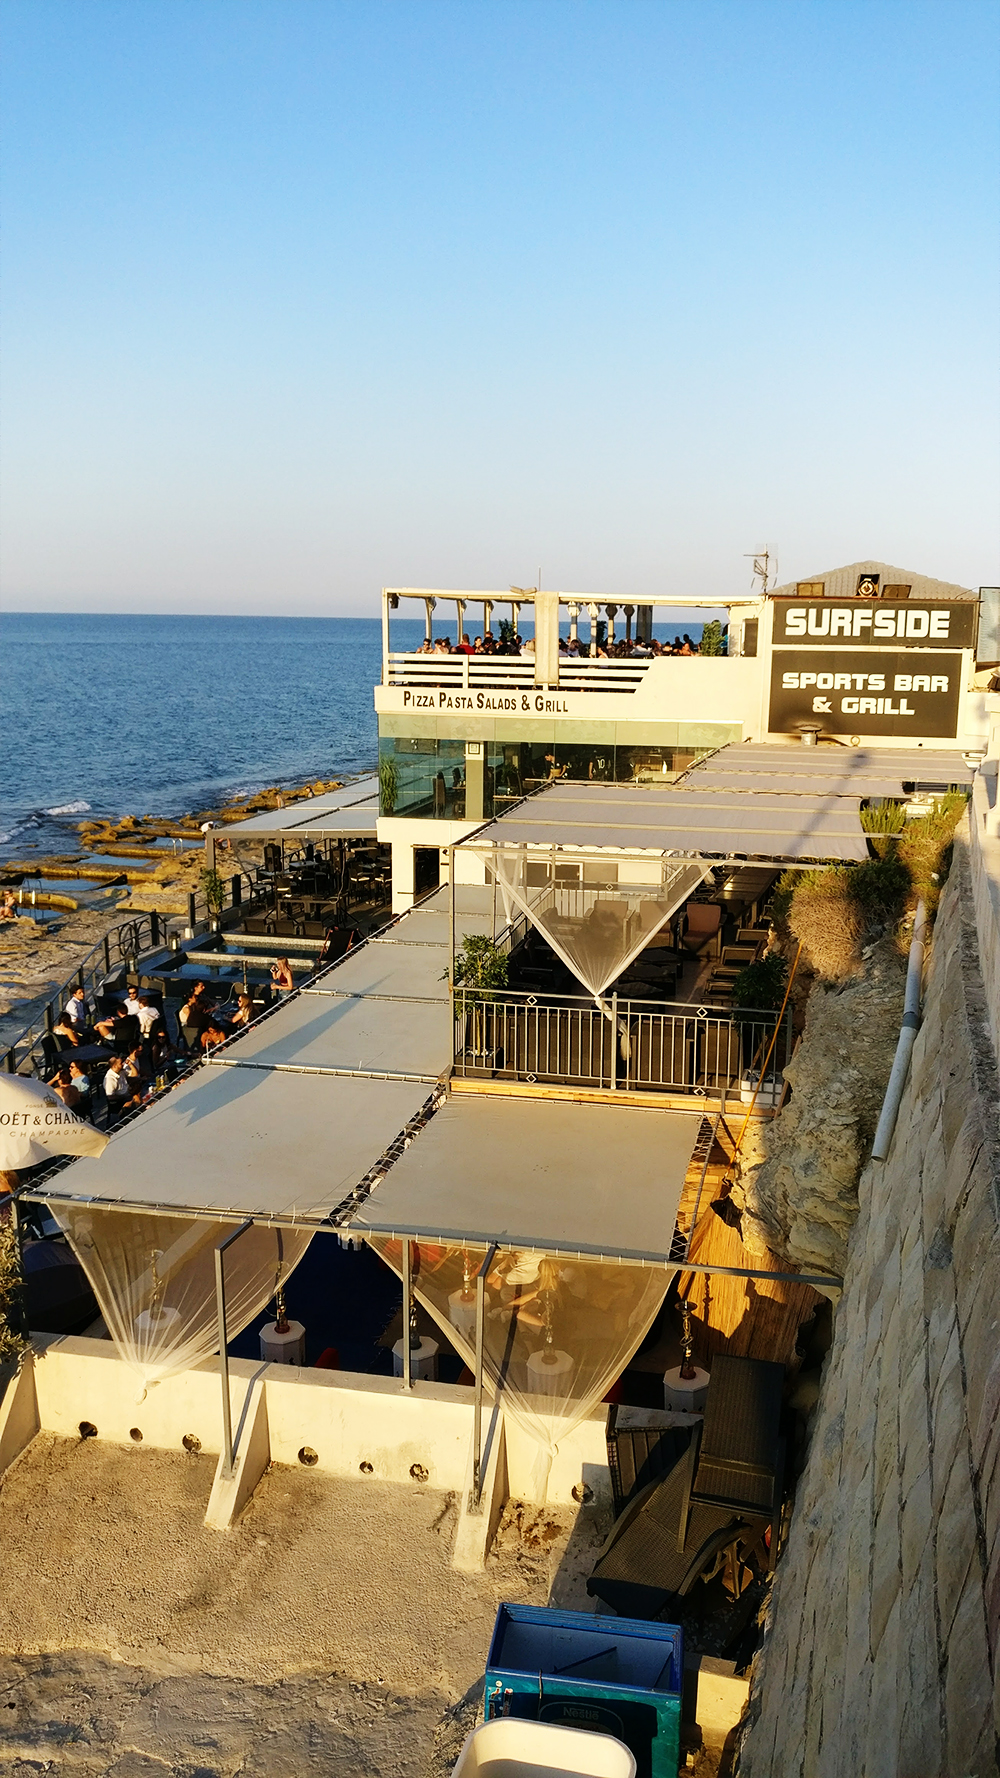 Dinner and sunset at Sliema, Surfside bar - Drinking and eating in Malta